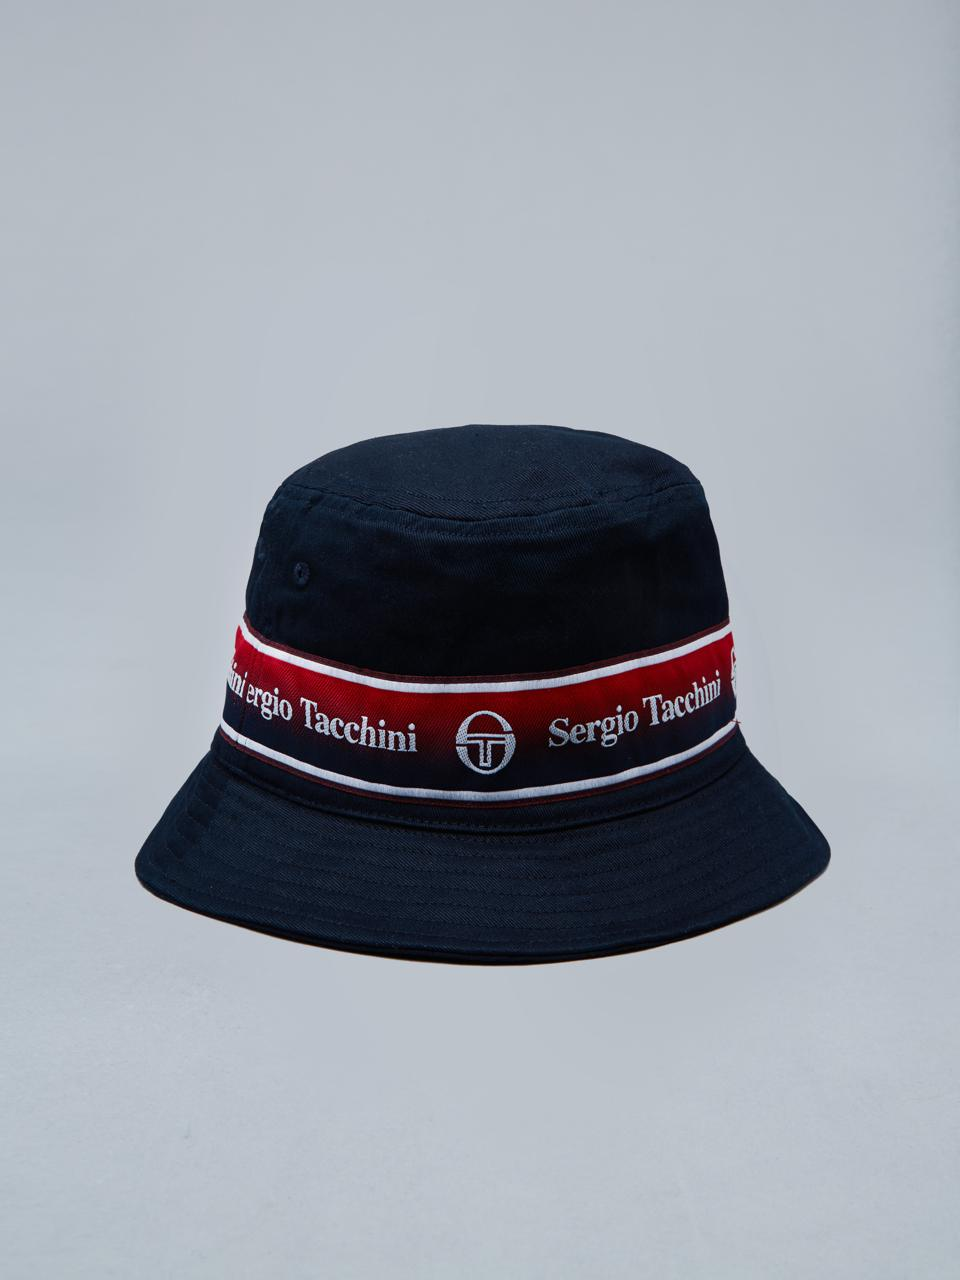 The Fivo Bucket Hat is a contemporary take on retro headwear, crafted from breathable cotton twill in a classic 360-degree brim silhouette for maximum sun protection. A wardrobe essential, the hat features Sergio Tacchini-branded taping around the brim seam for a throwback vibe, while embroidered eyelets offer additional ventilation.